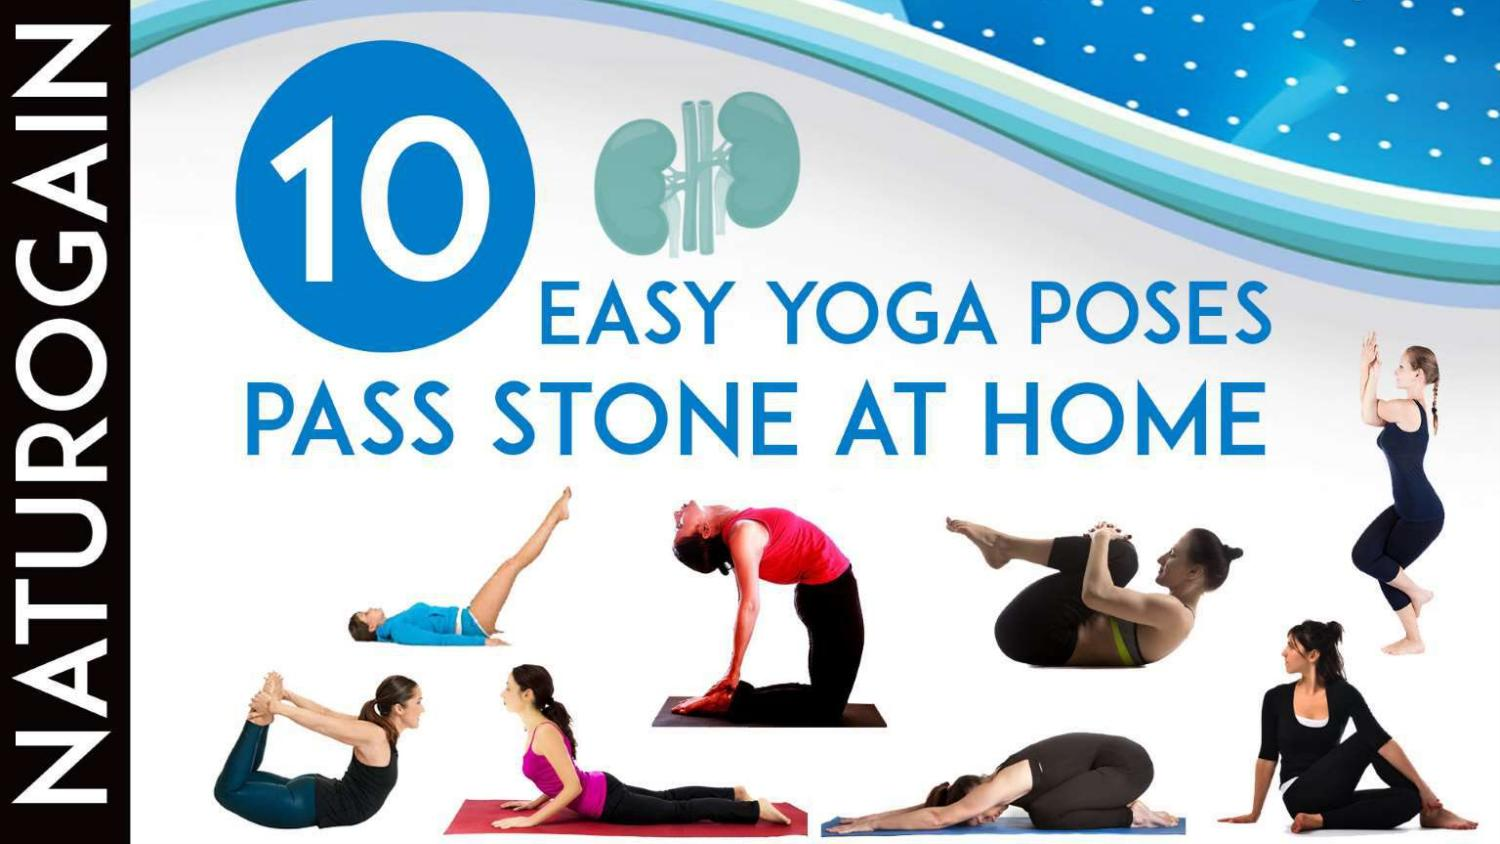 30 EASY Yoga Poses to Get Rid of Kidney Stones at Home by Caron